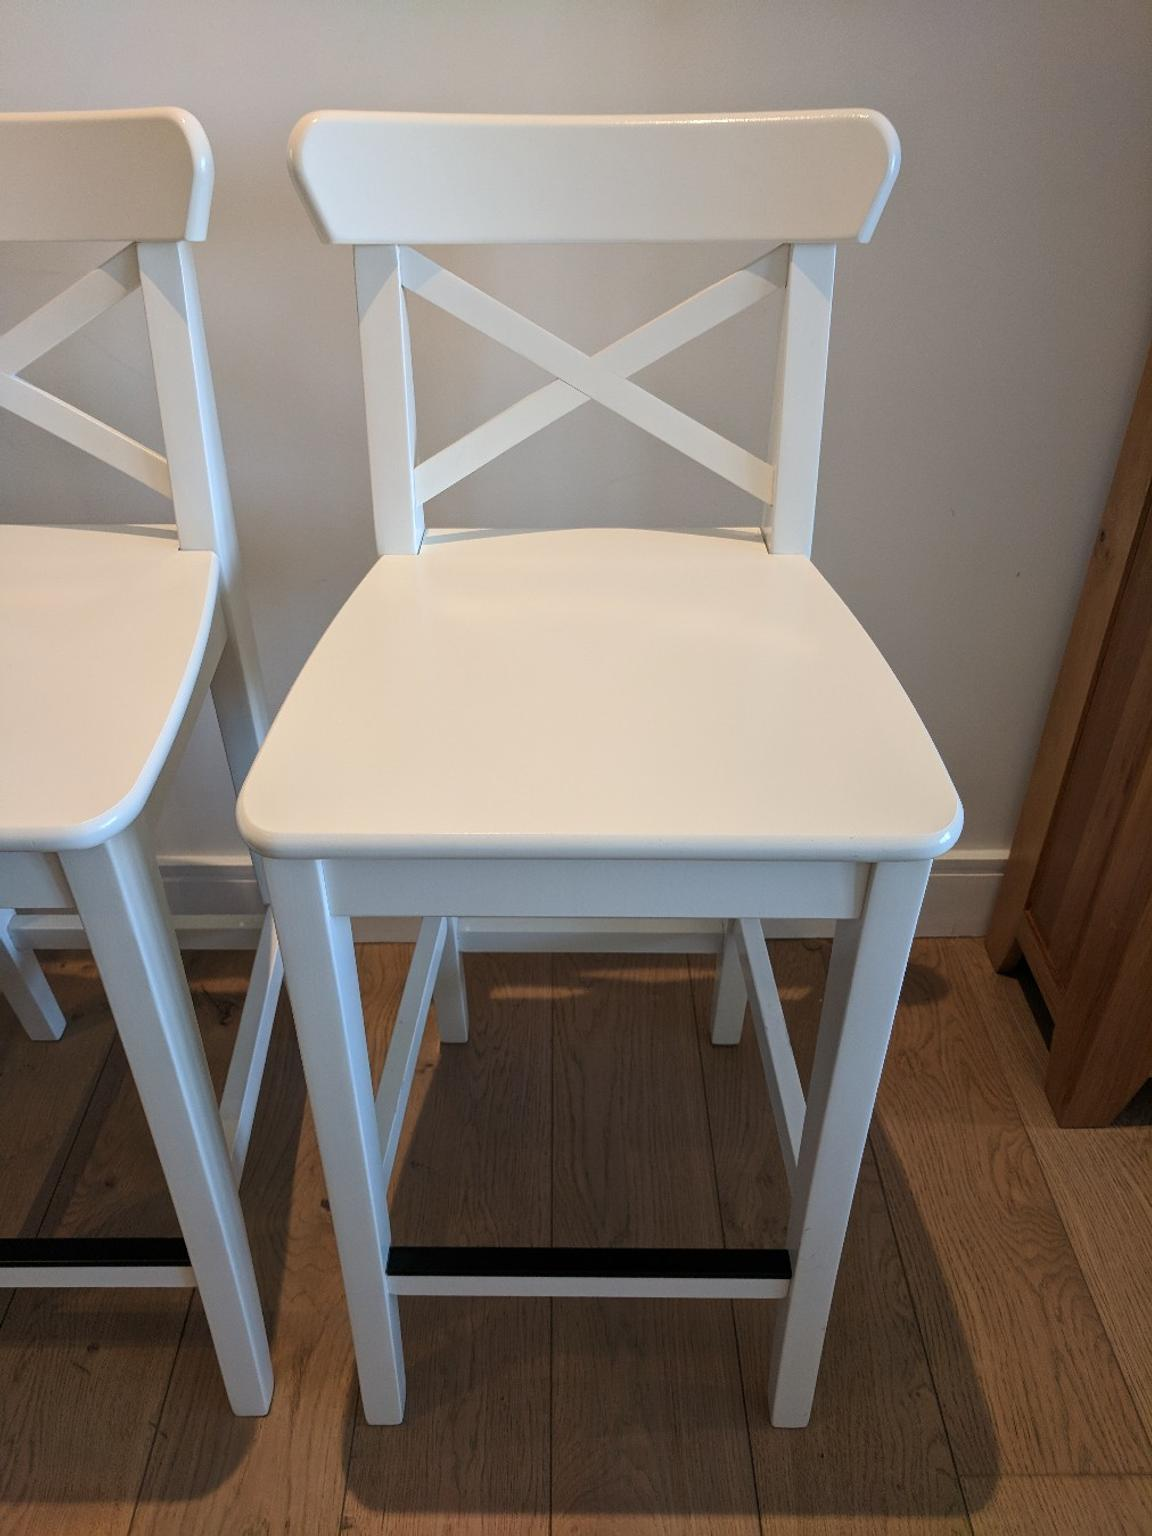 2 White Ikea Ingolf Bar Stools With Backrest In Tw8